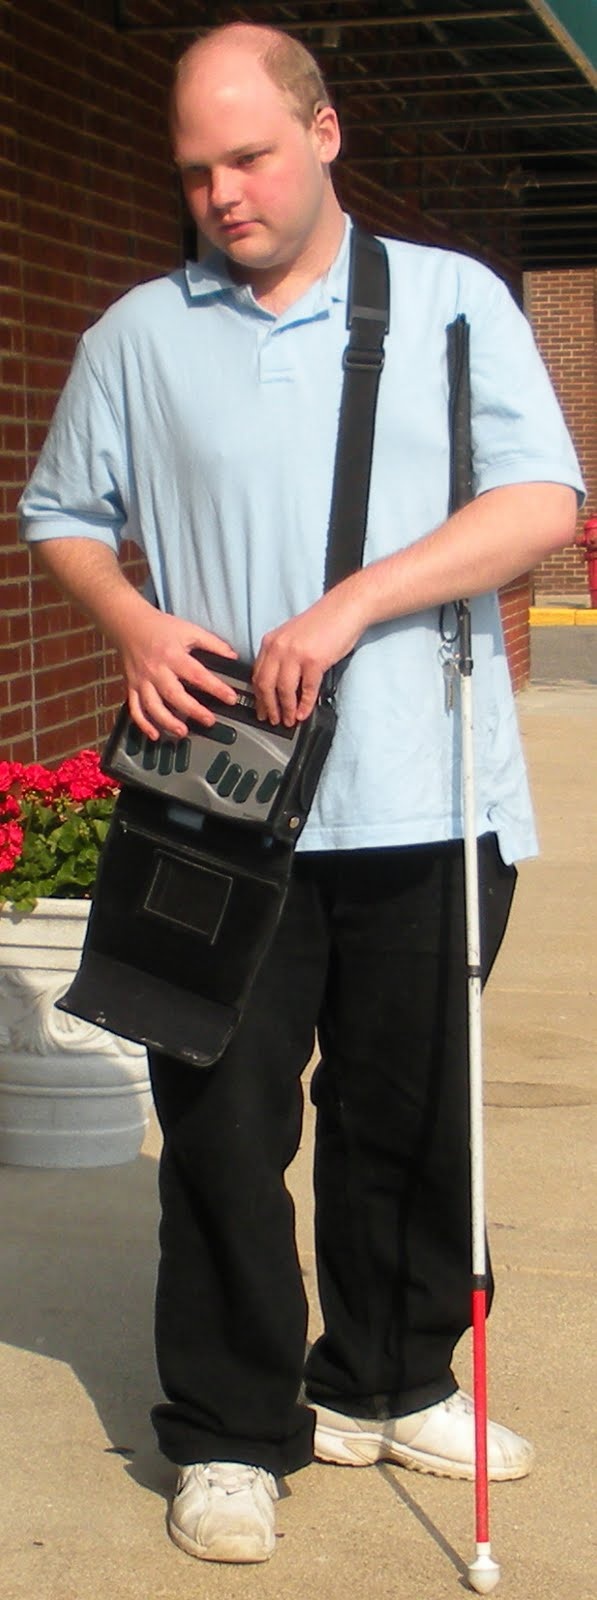 Photo of Scott Davert, standing on the sidewalk with his white cane and assistive technology